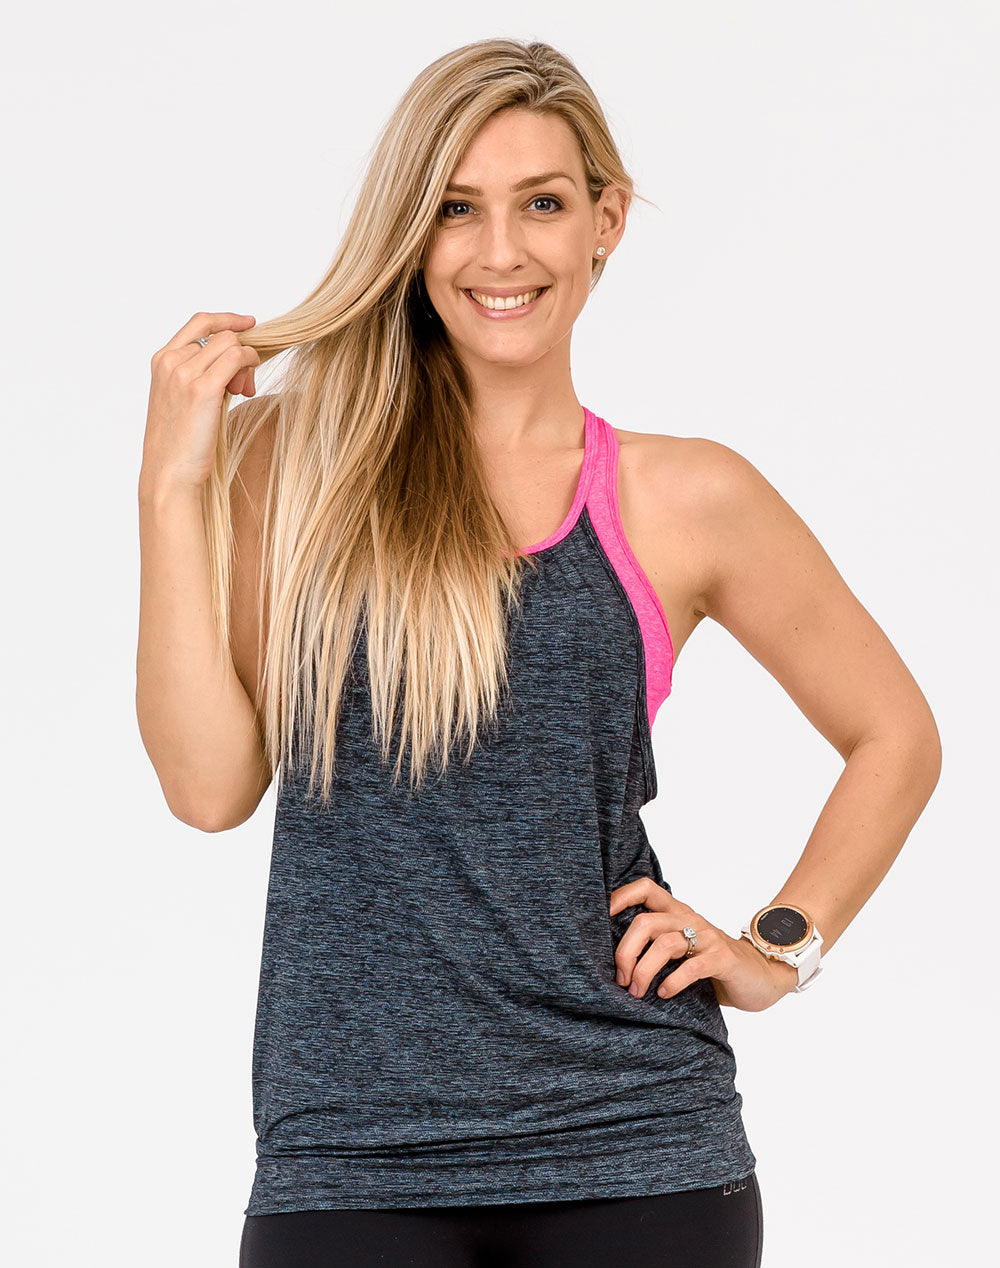 active mum wearing a grey and pink breastfeeding top loose fit tank